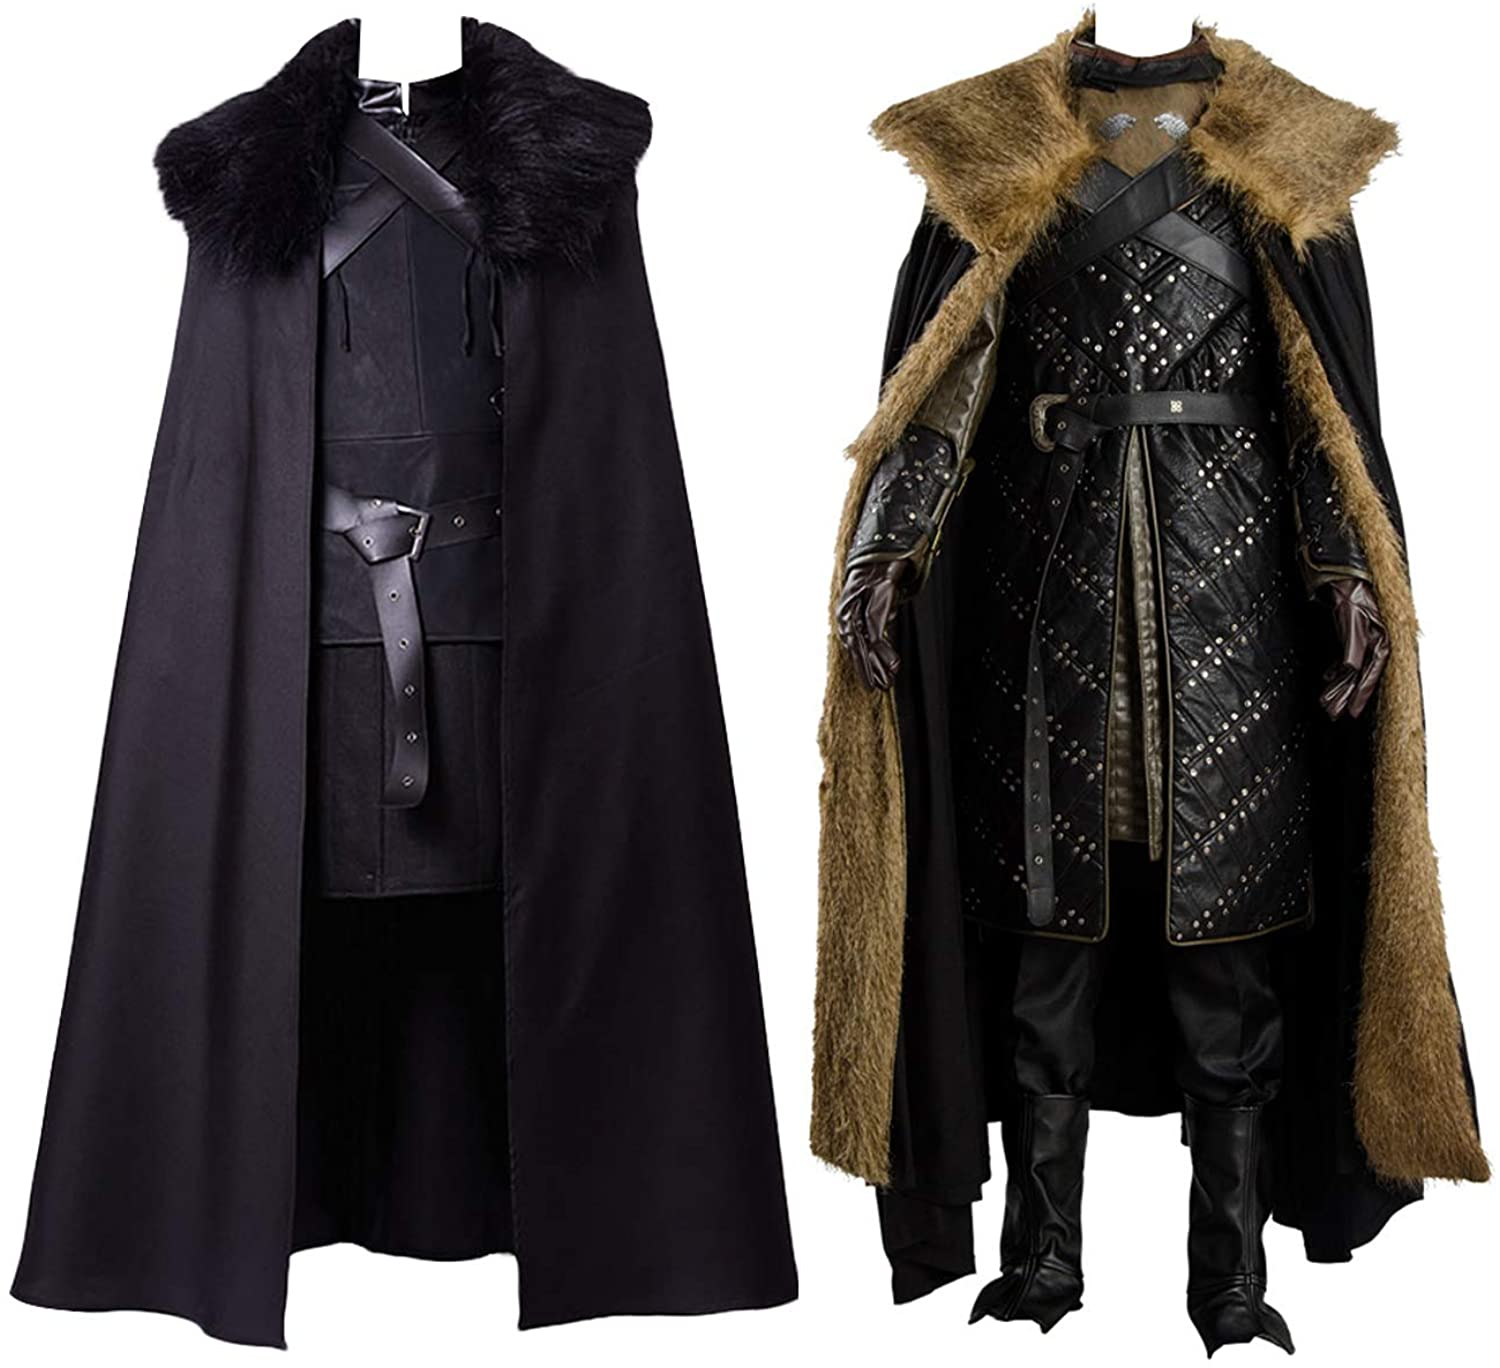 Jon Snow Cosplay Costume Gifts H Free shipping New Night's Watch Knights